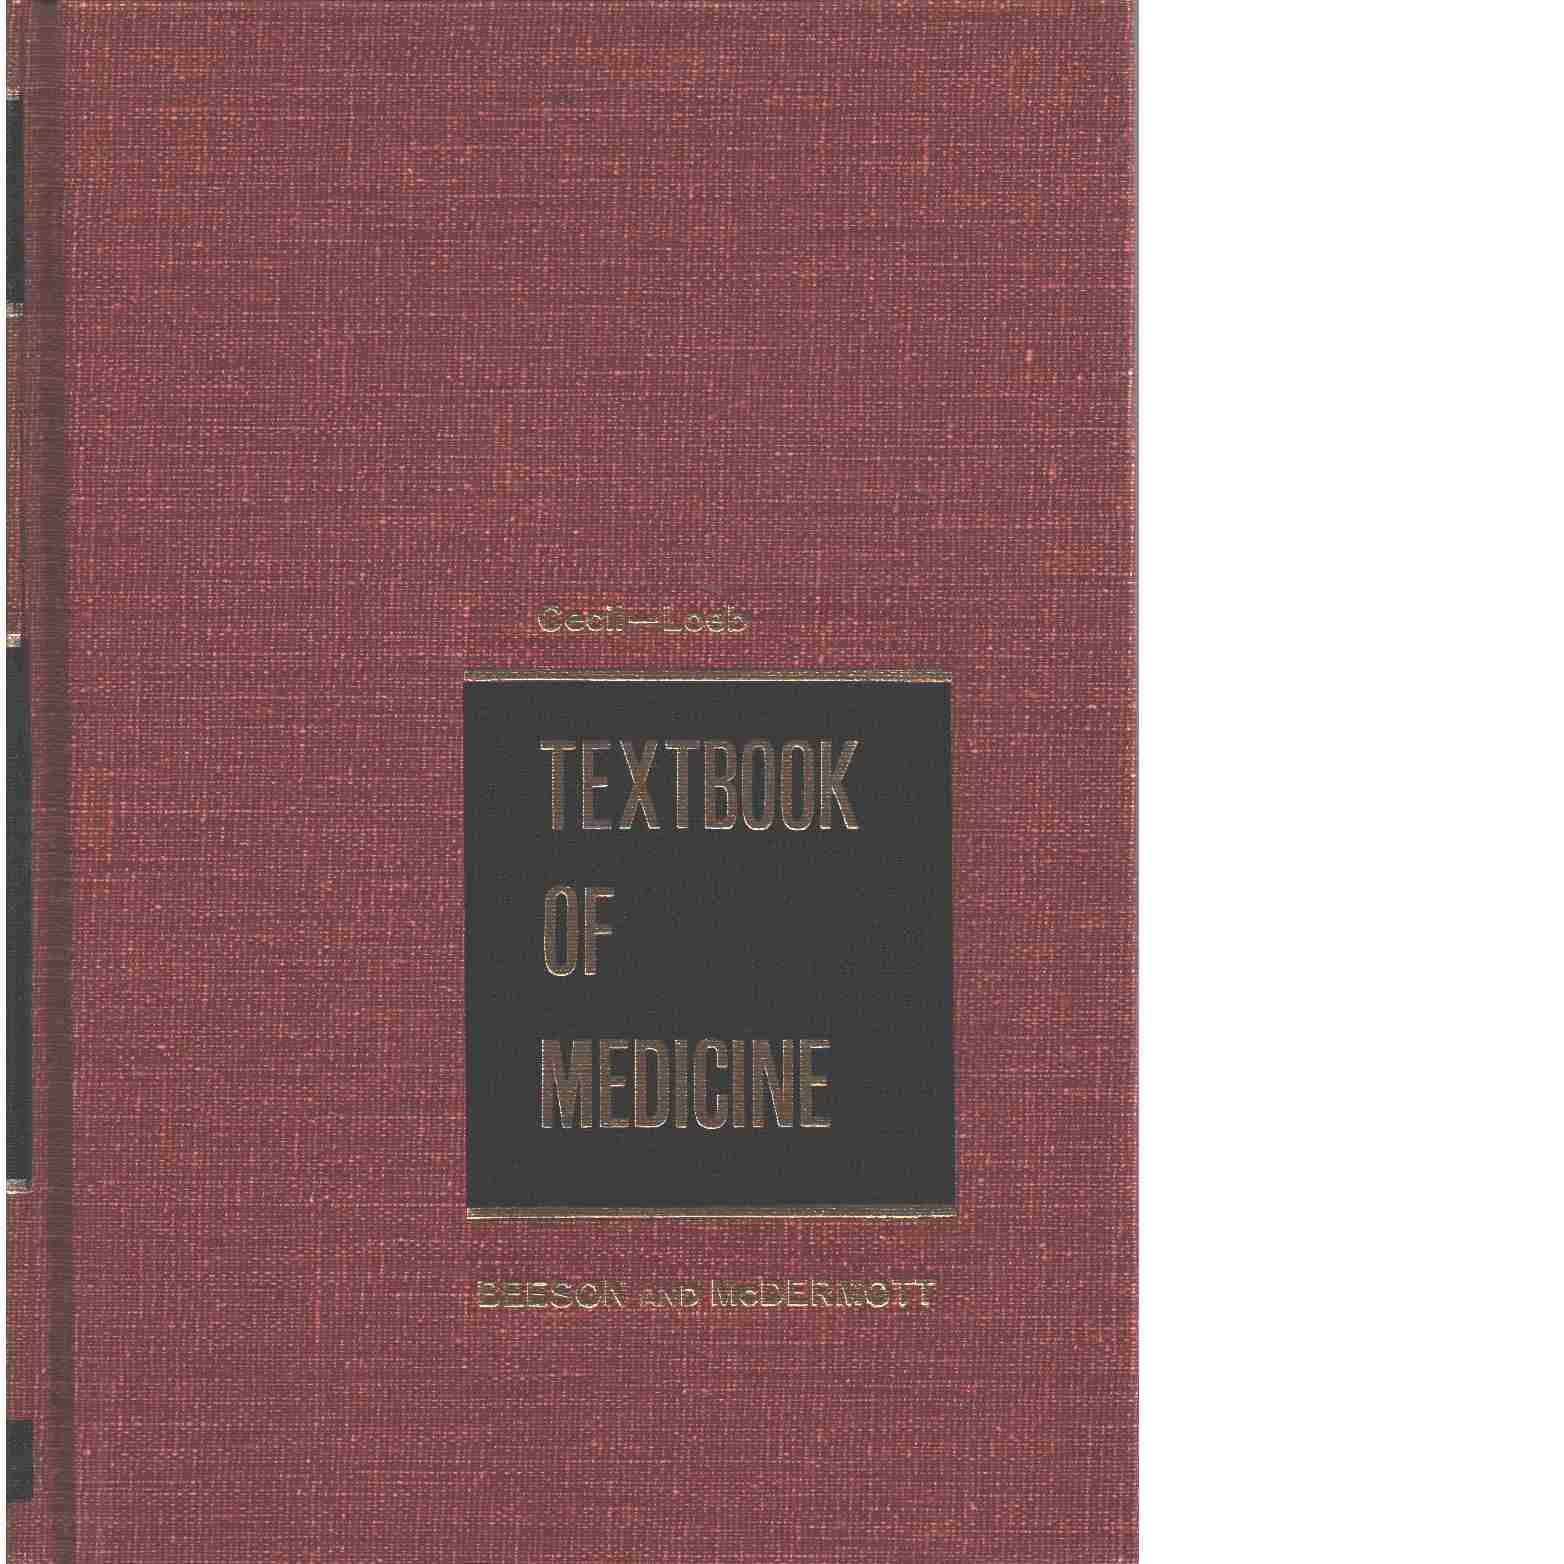 Cecil-Loeb Textbook of medicine - Cecil, Russell La Fayette